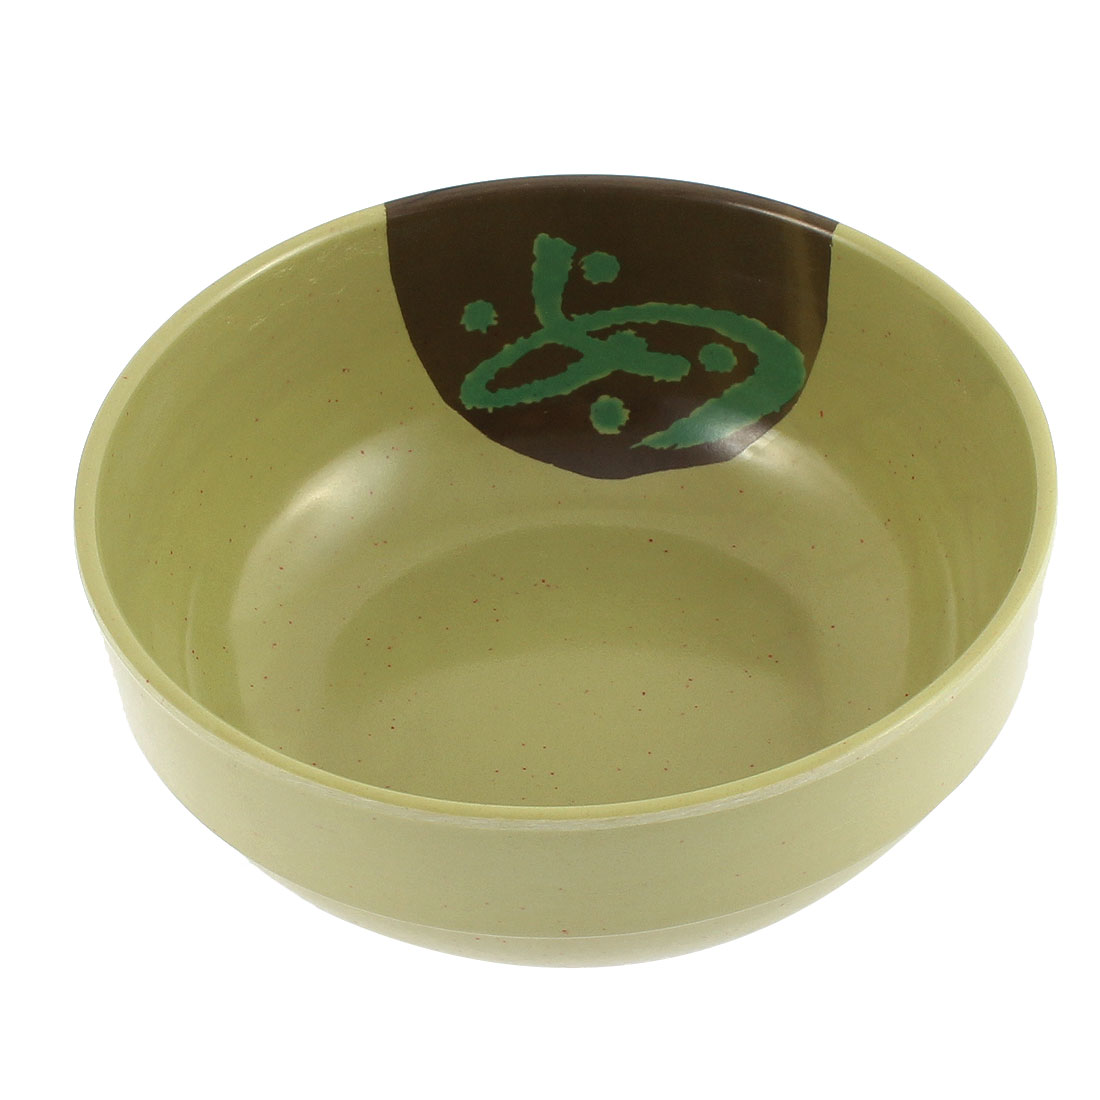 Resturant Household Rice Soup Food Bowl Holder Green